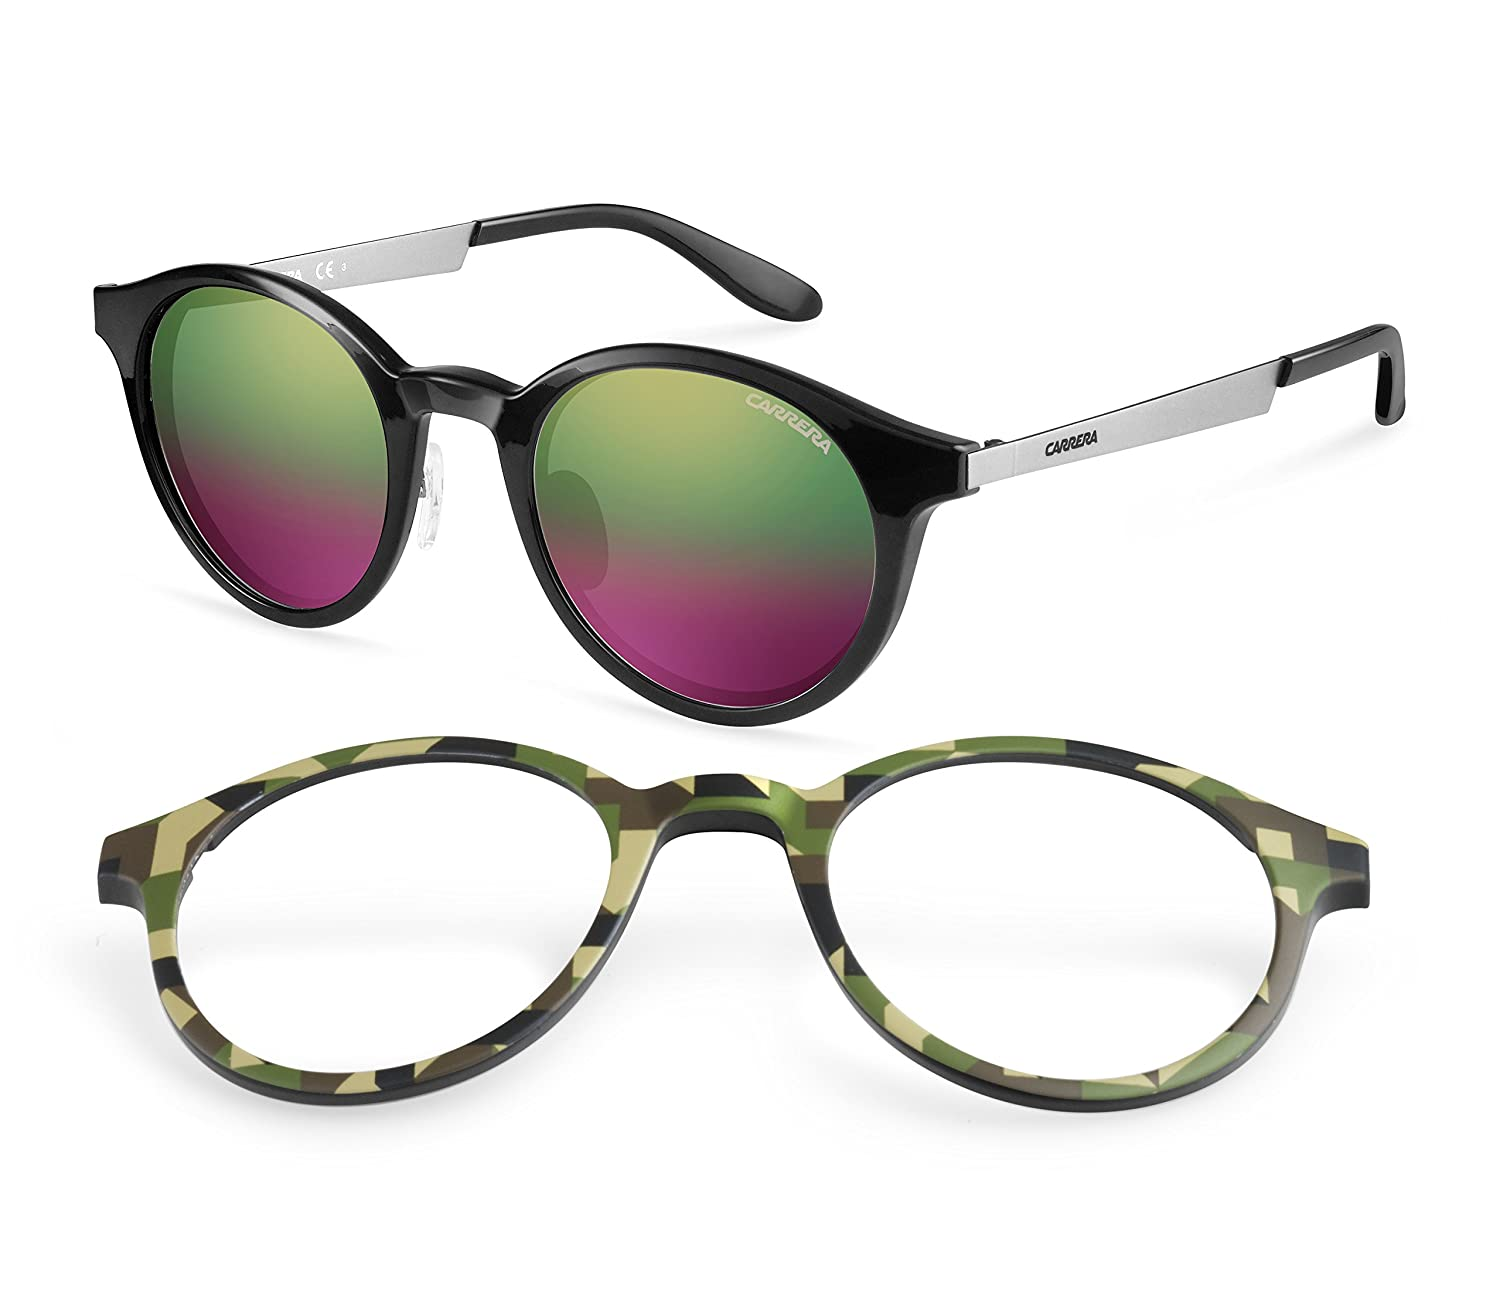 4fa1be214fd16 Lunette Soleil Carrera Femme – Southern California Weather Force